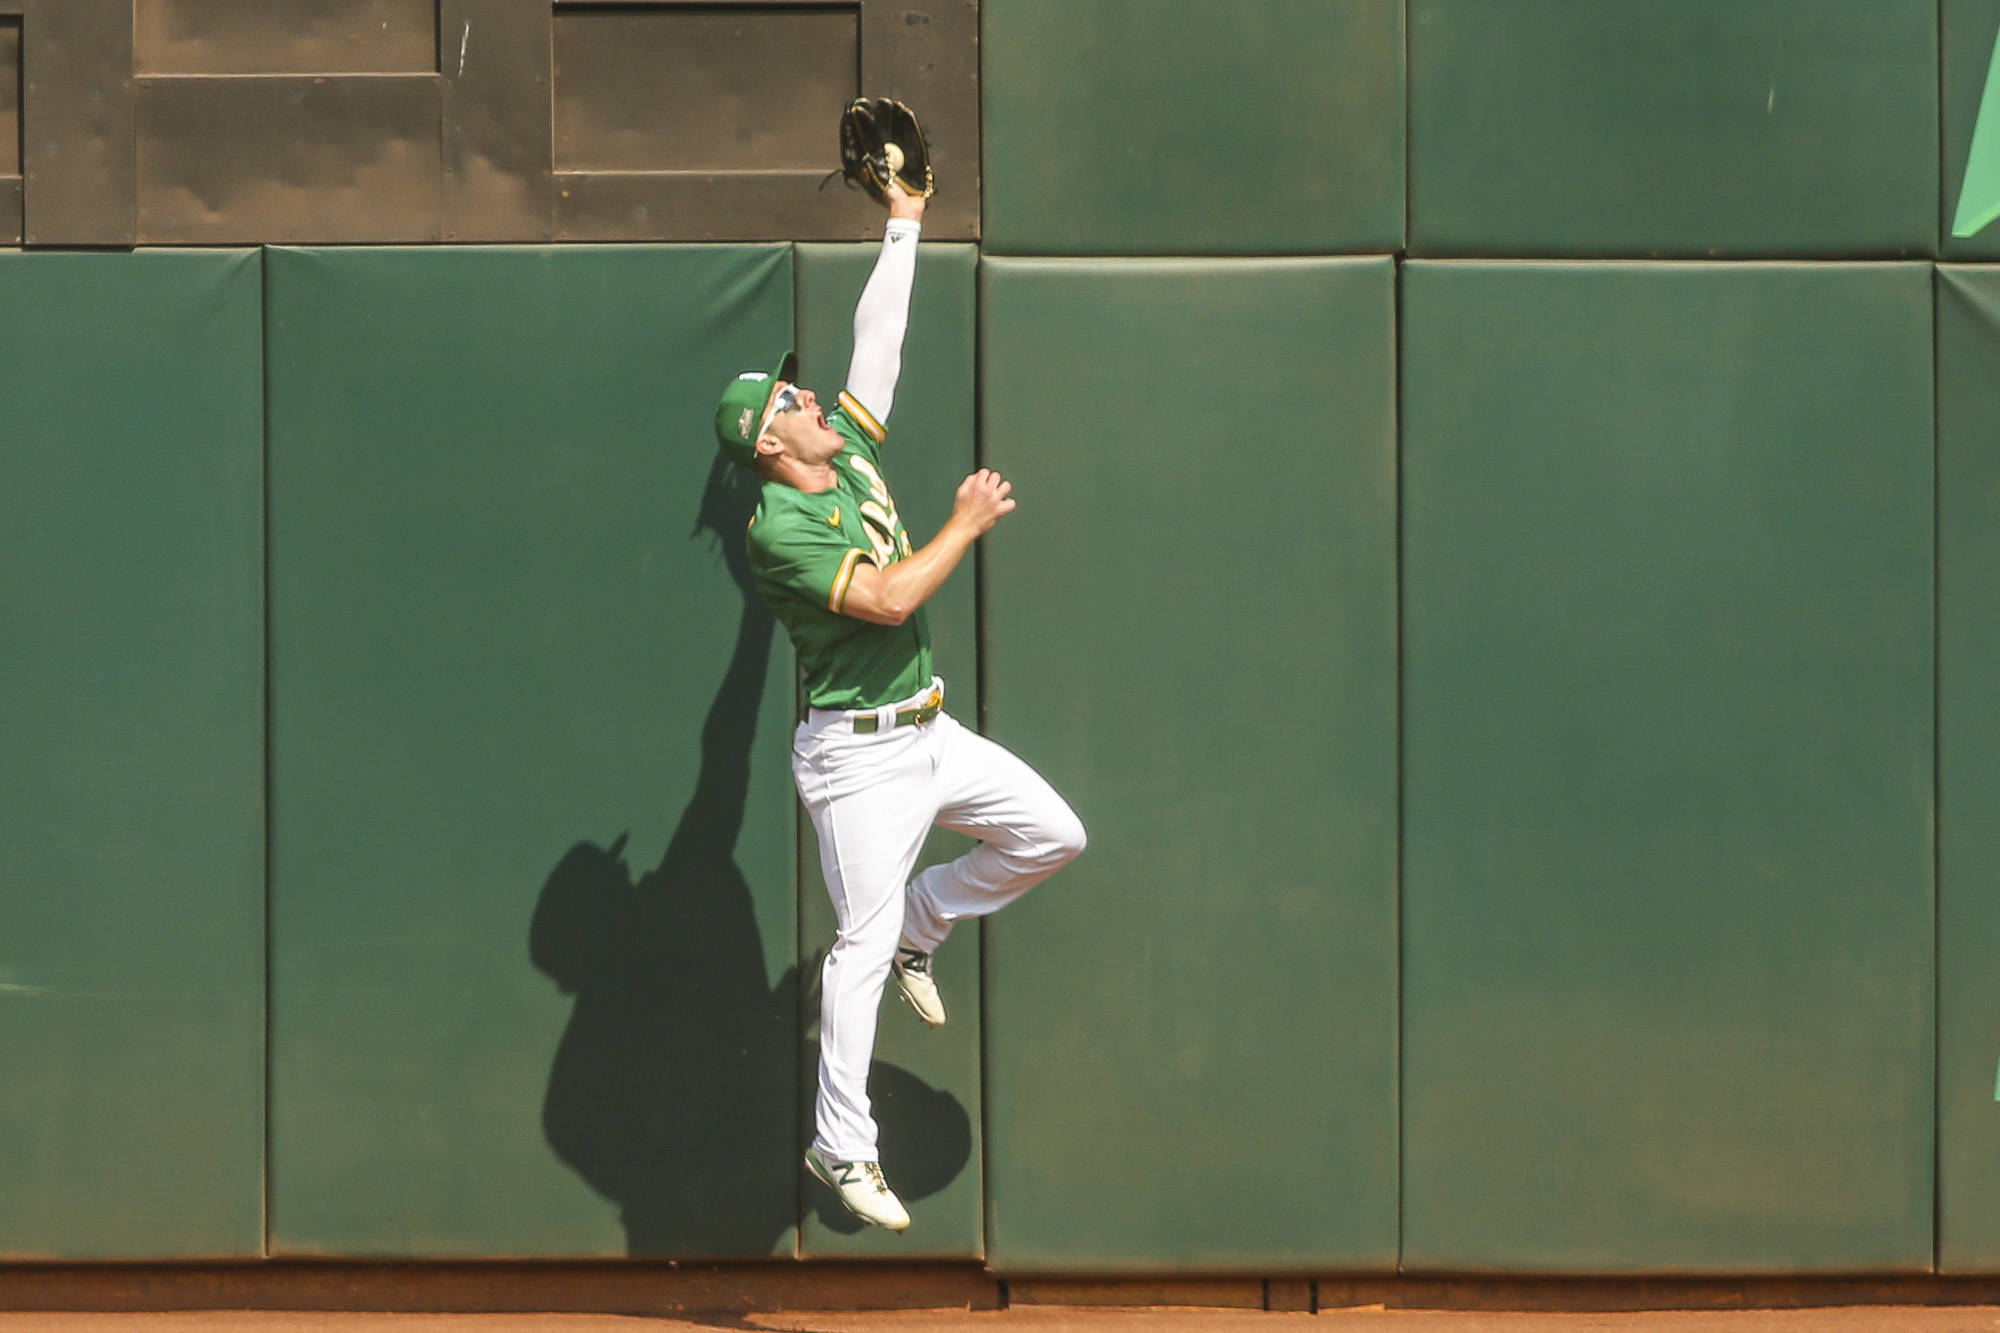 Oakland Athletics left fielder Mark Canha (20) steals a hit against the wall in Game 2 of the AL Wild Card Series against the Chicago White Sox on September 30, 2020 in Oakland, California. (Chris Victorio | Special to S.F. Examiner).